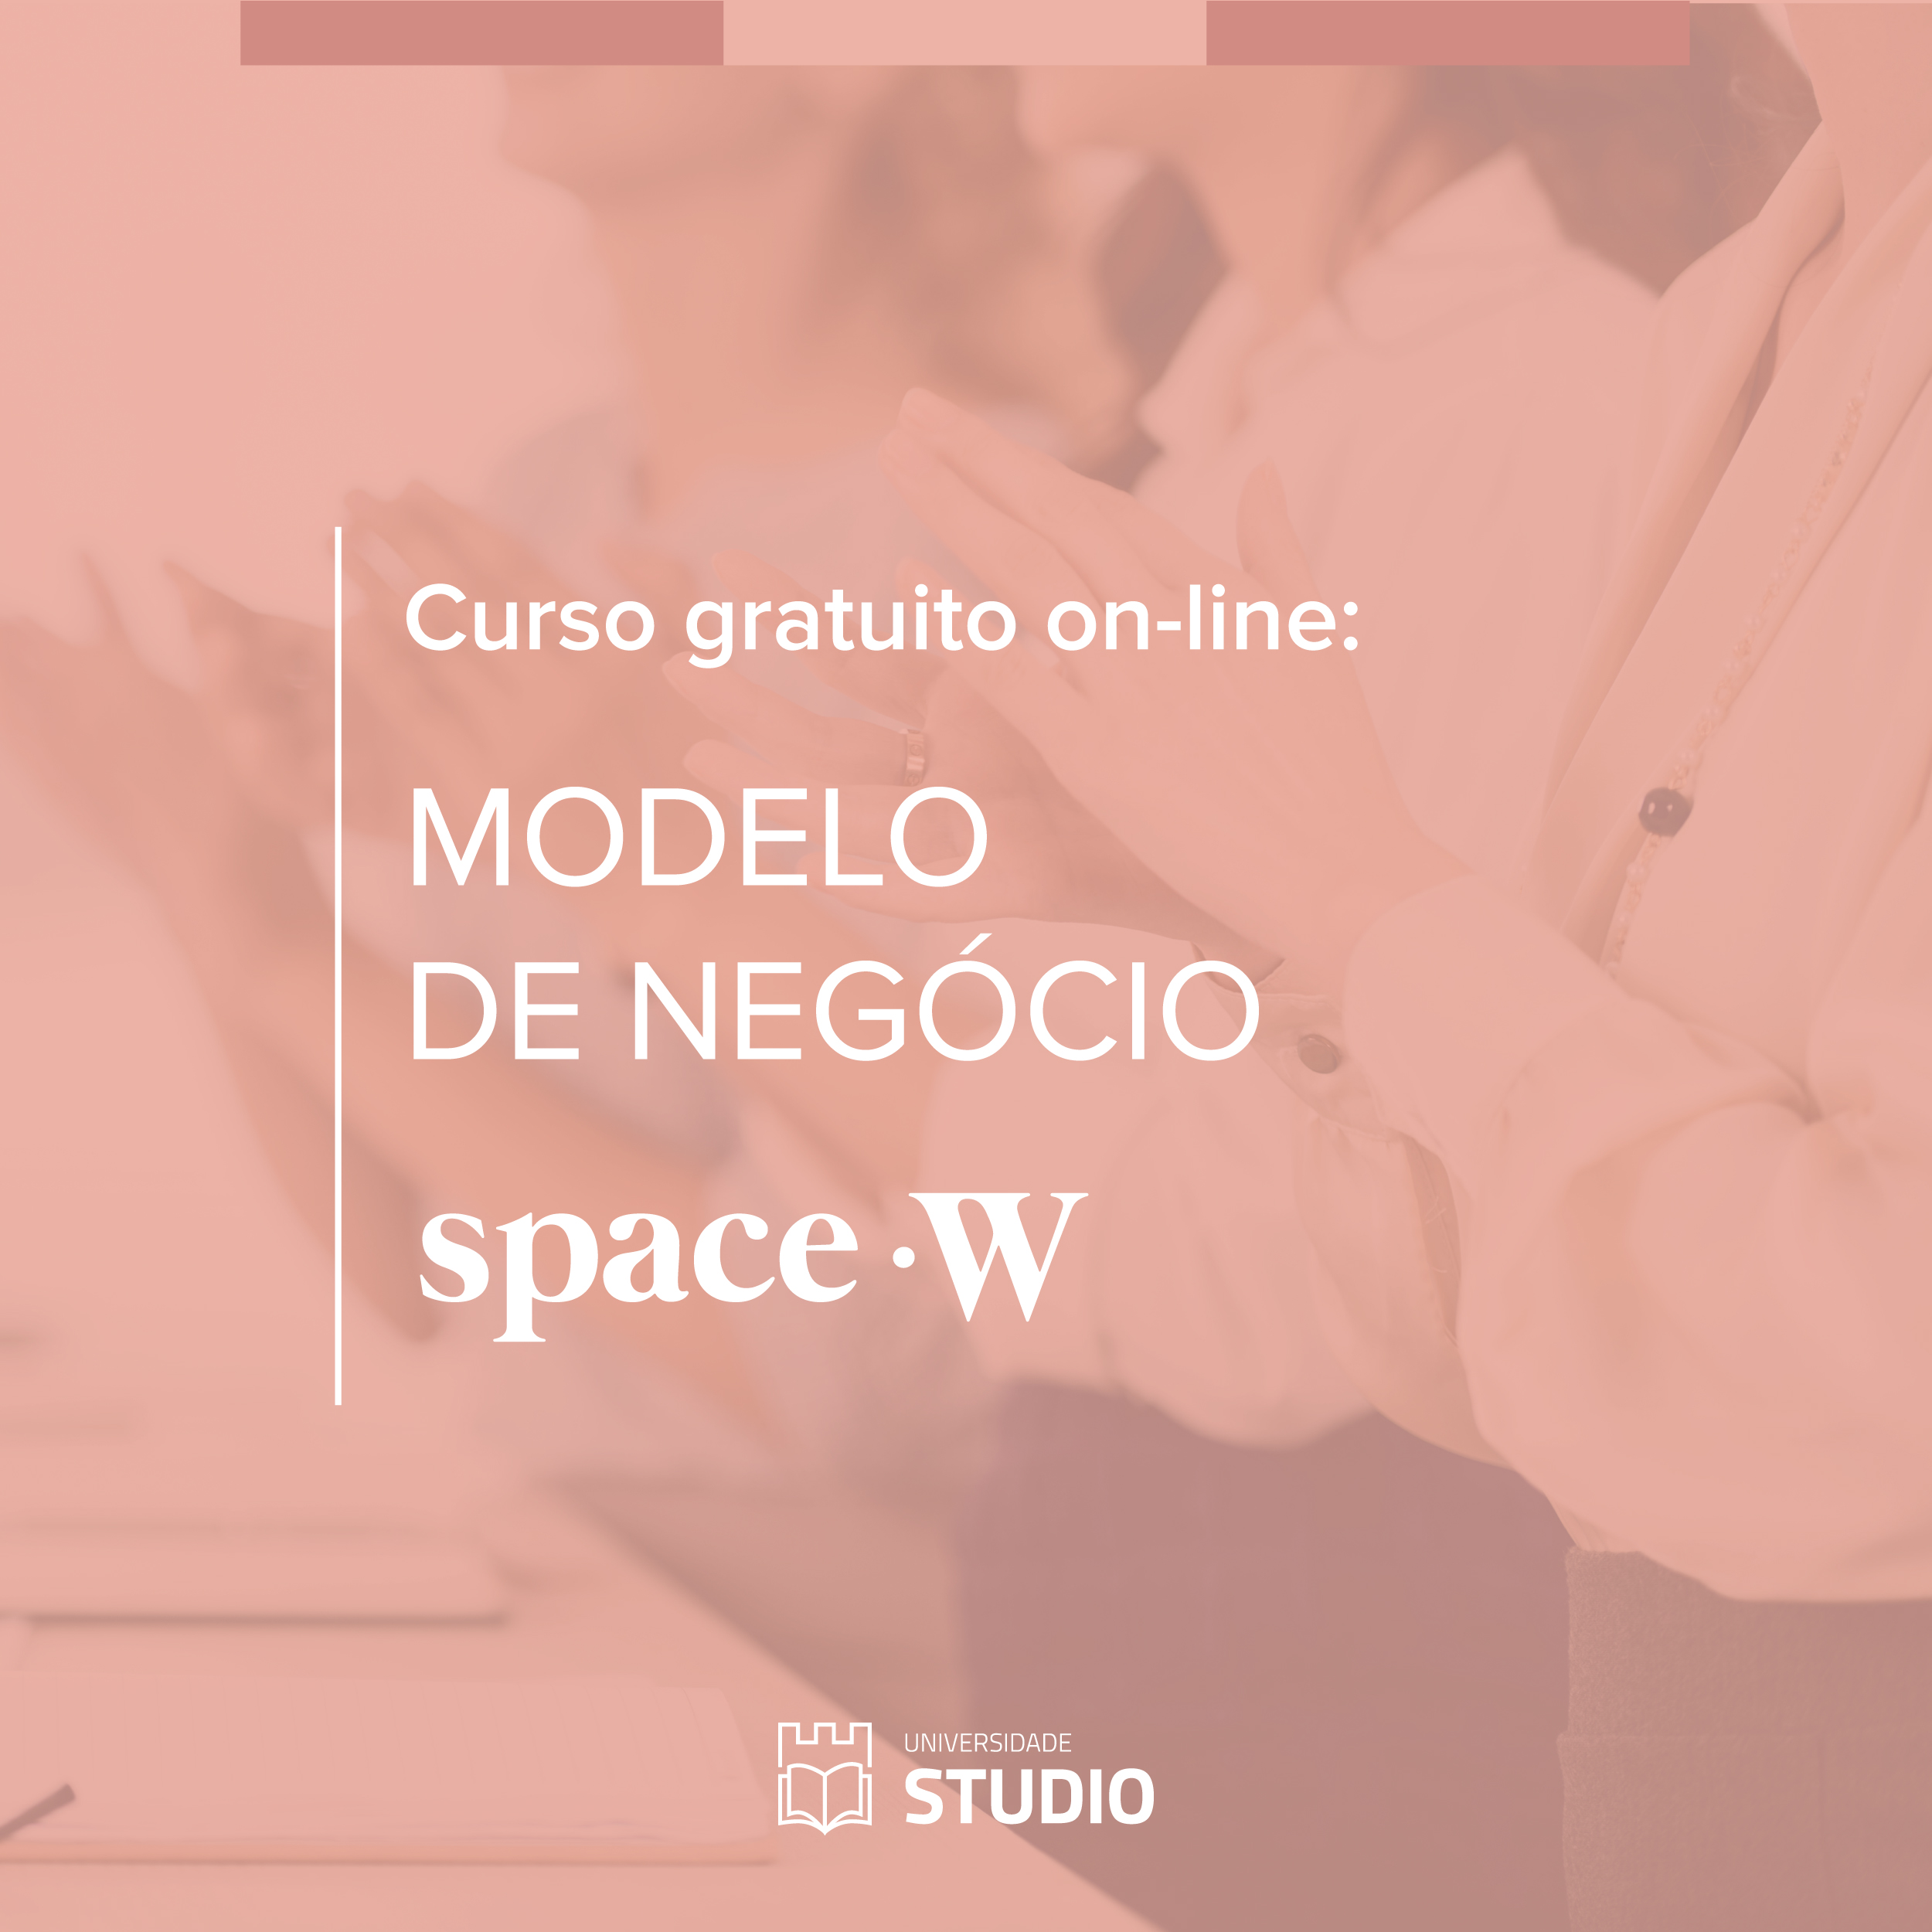 Universidade curso spacew capa